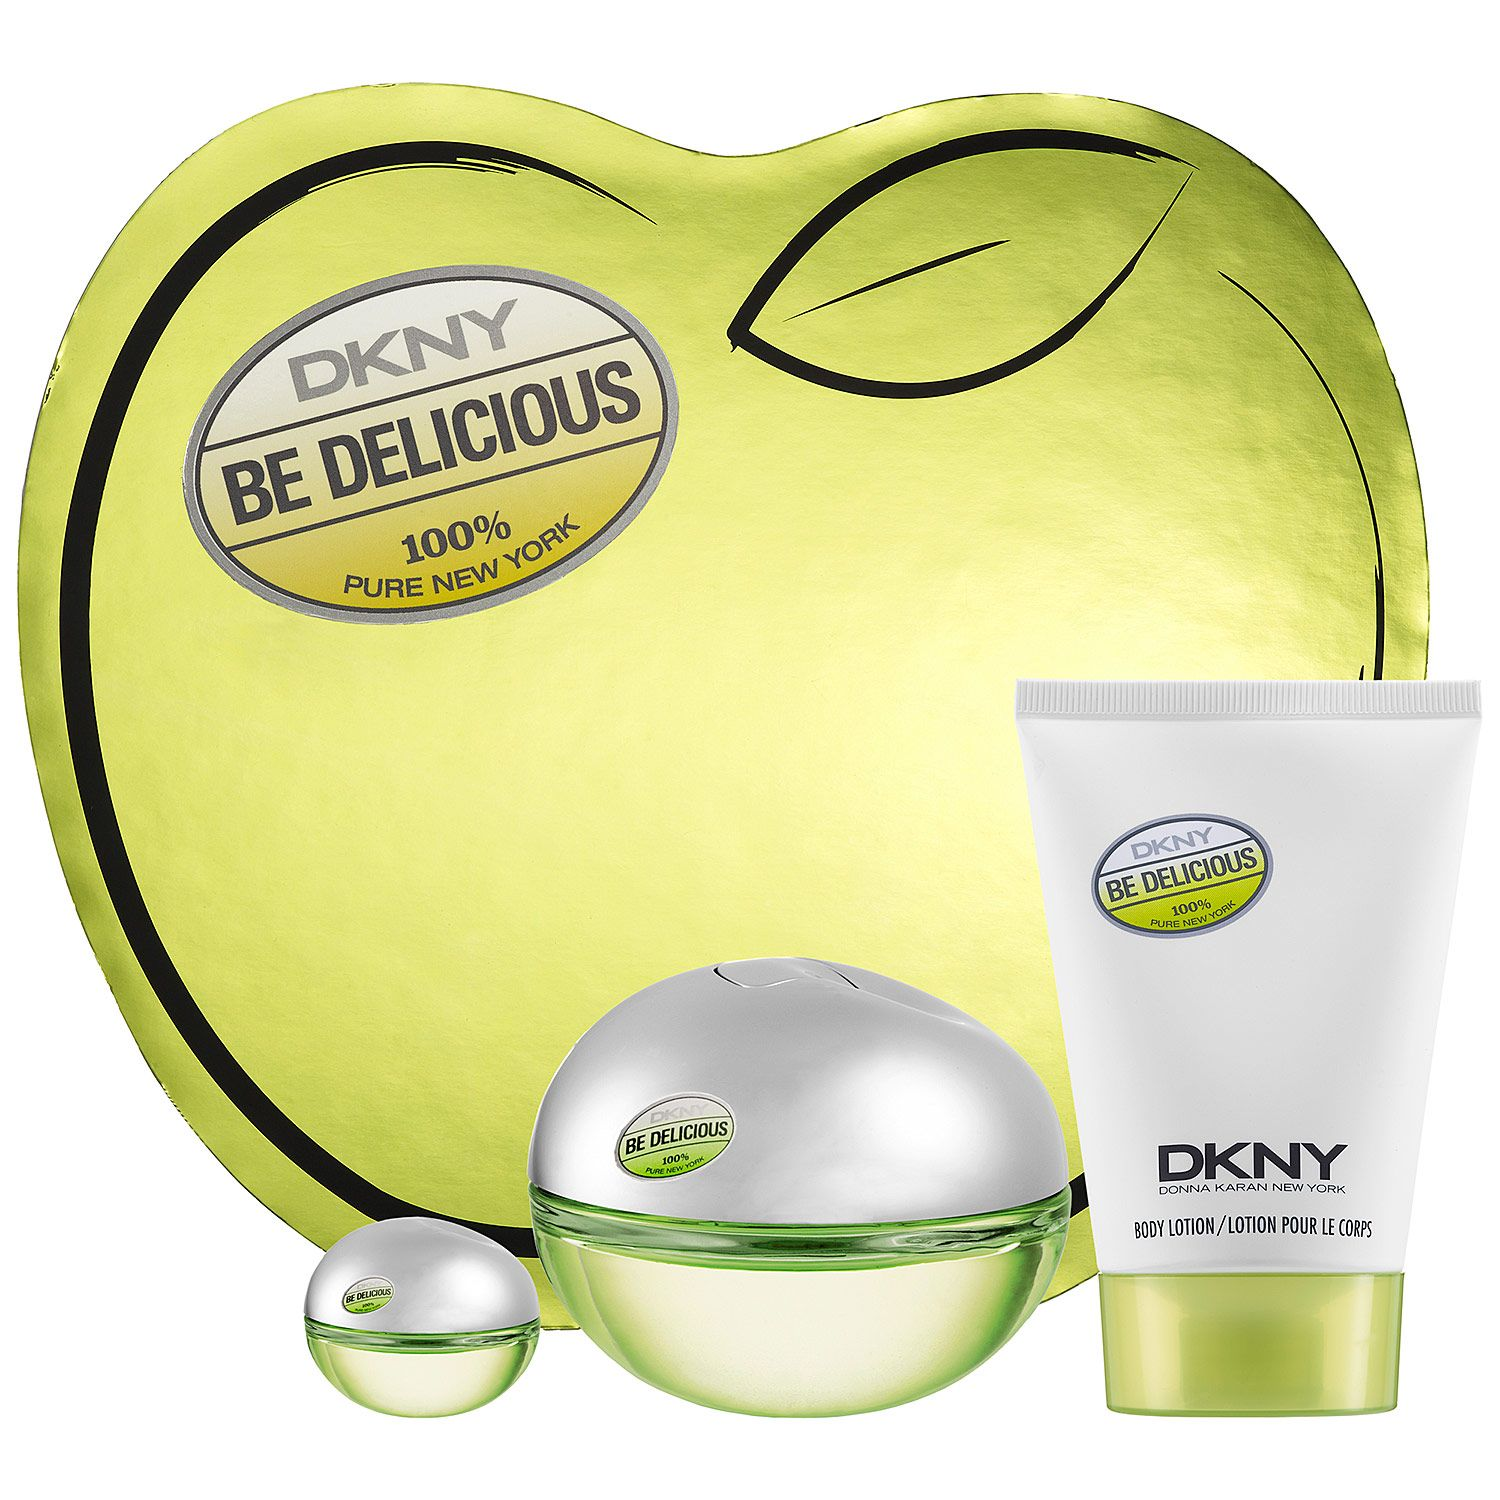 Dkny Be Delicious Gift Set Perfume Gift Sets Sephora Dkny